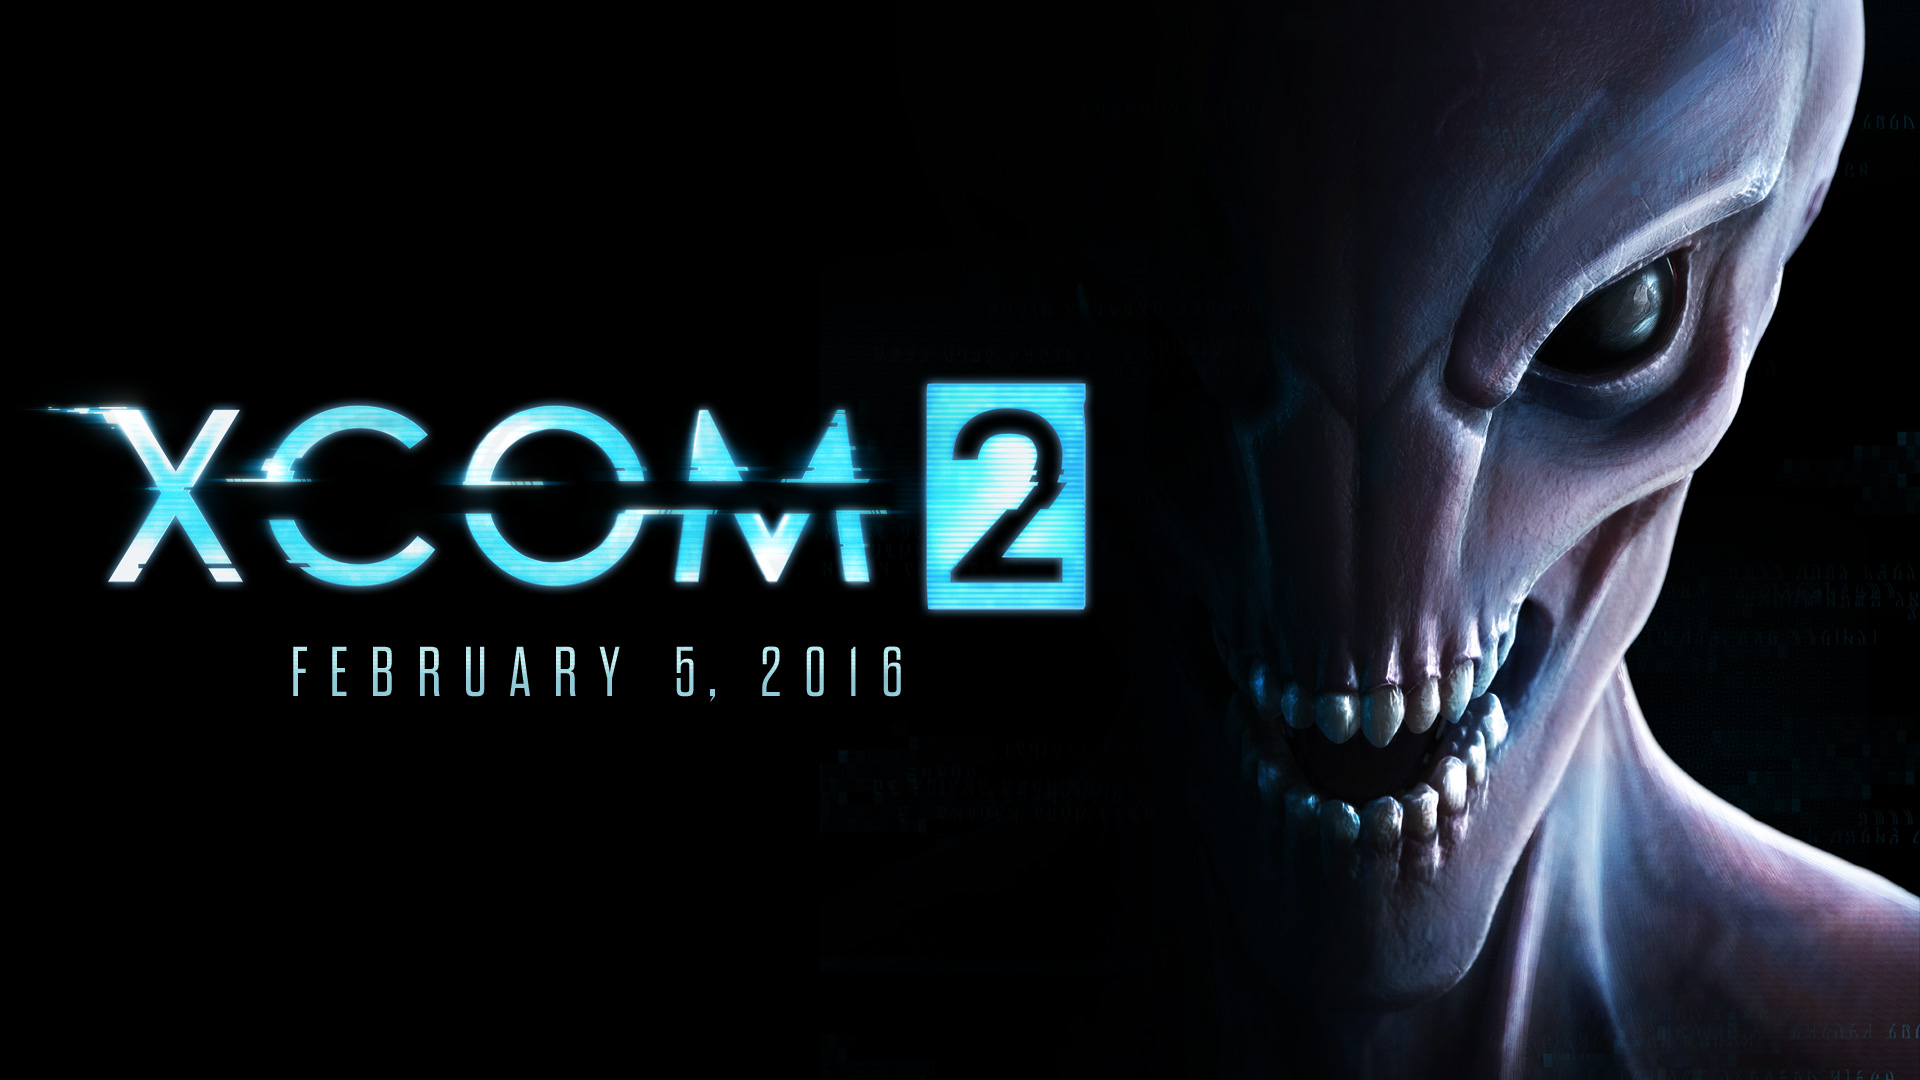 xcom 2 wallpapers high resolution and quality download